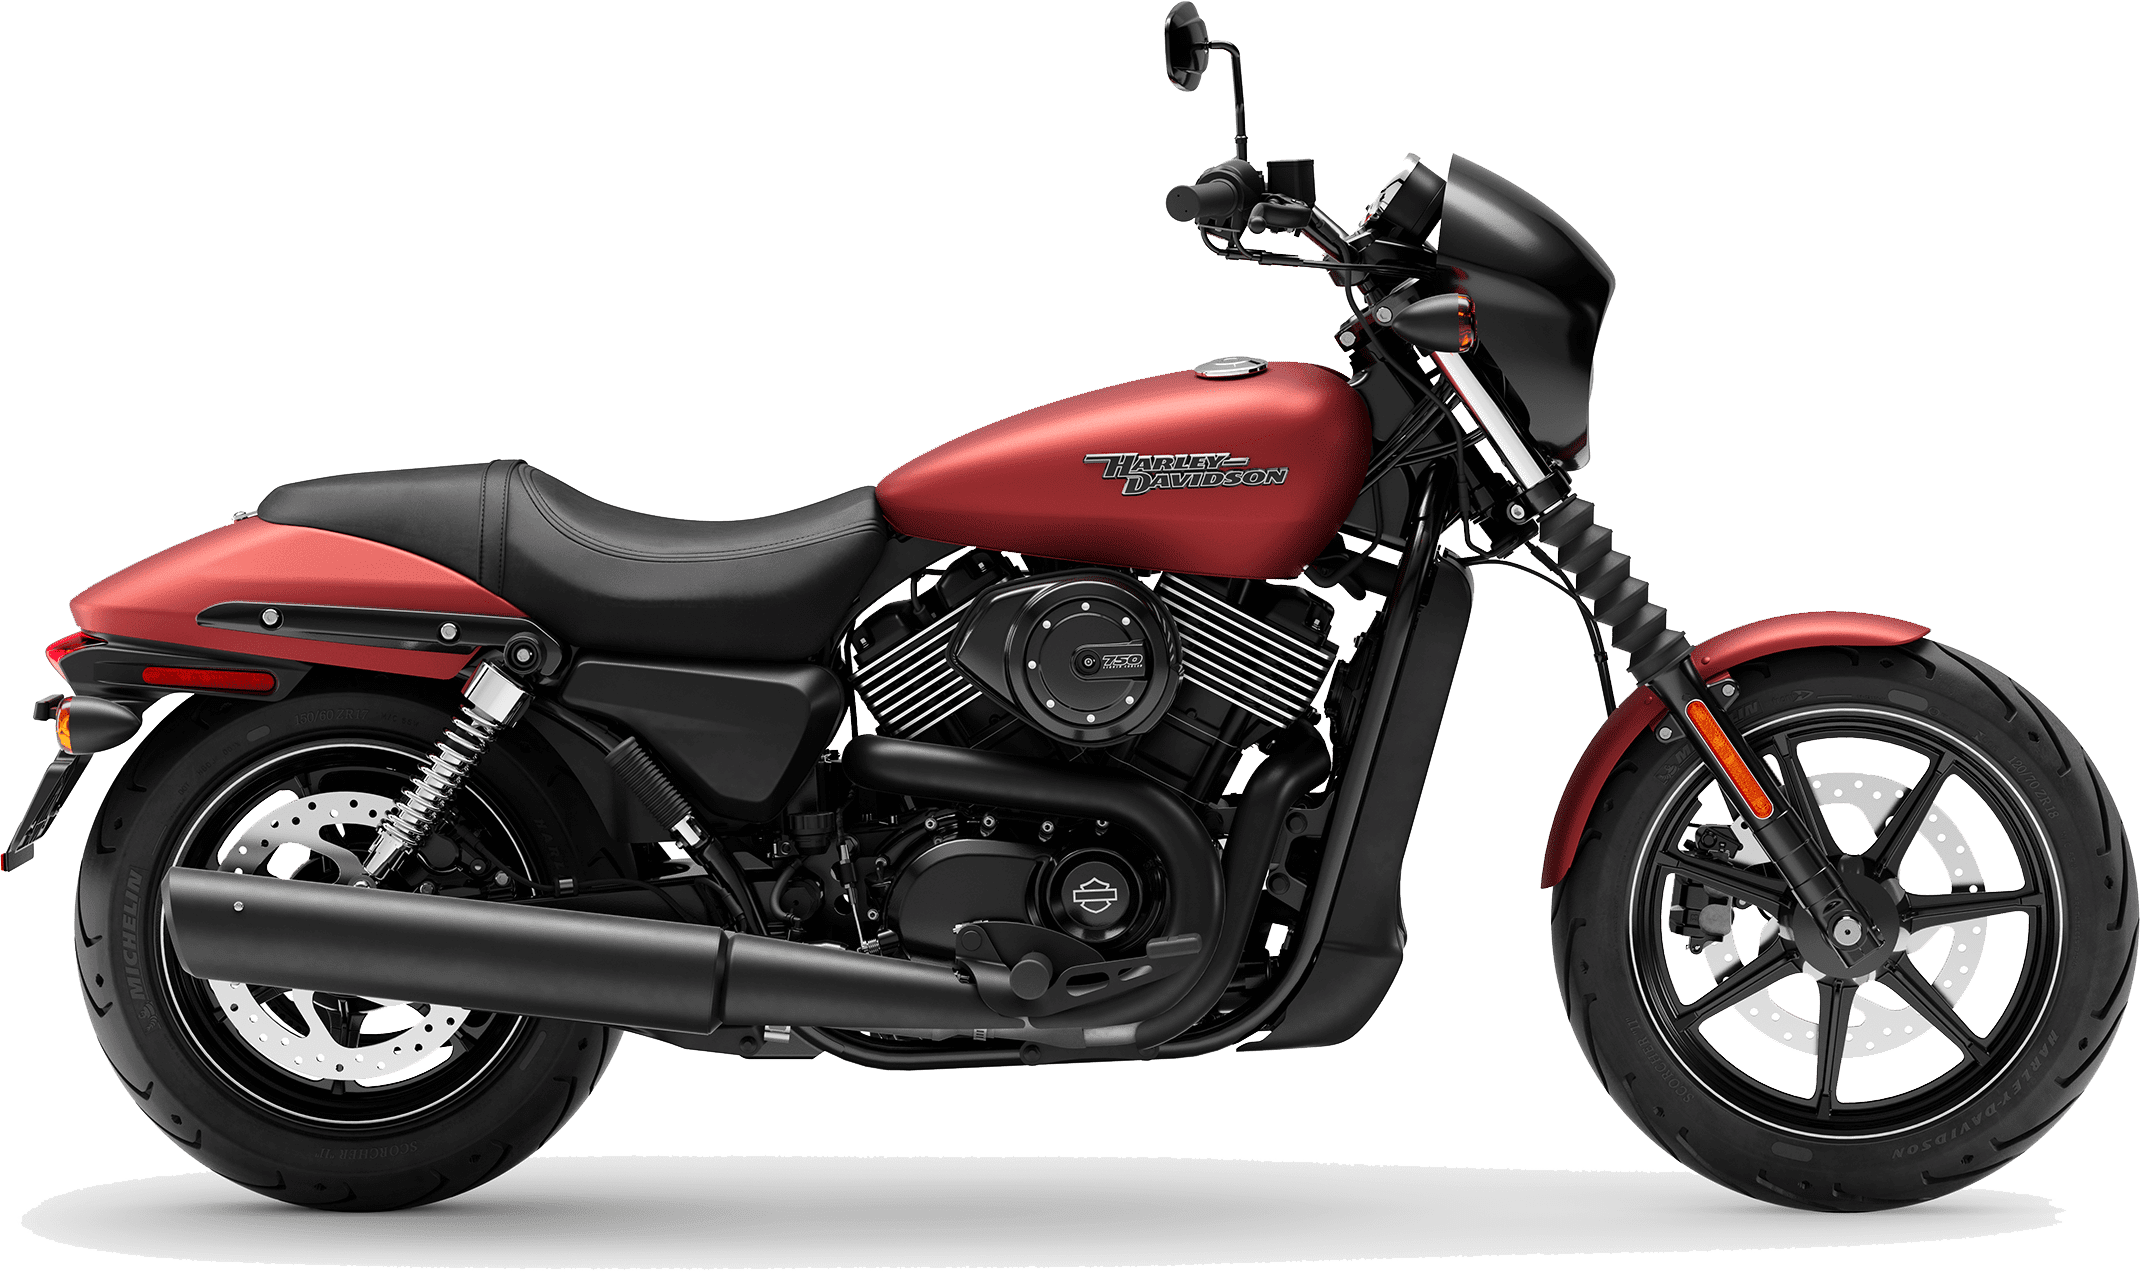 2019 Harley-Davidson H-D Street 750 Wicked Red Denim